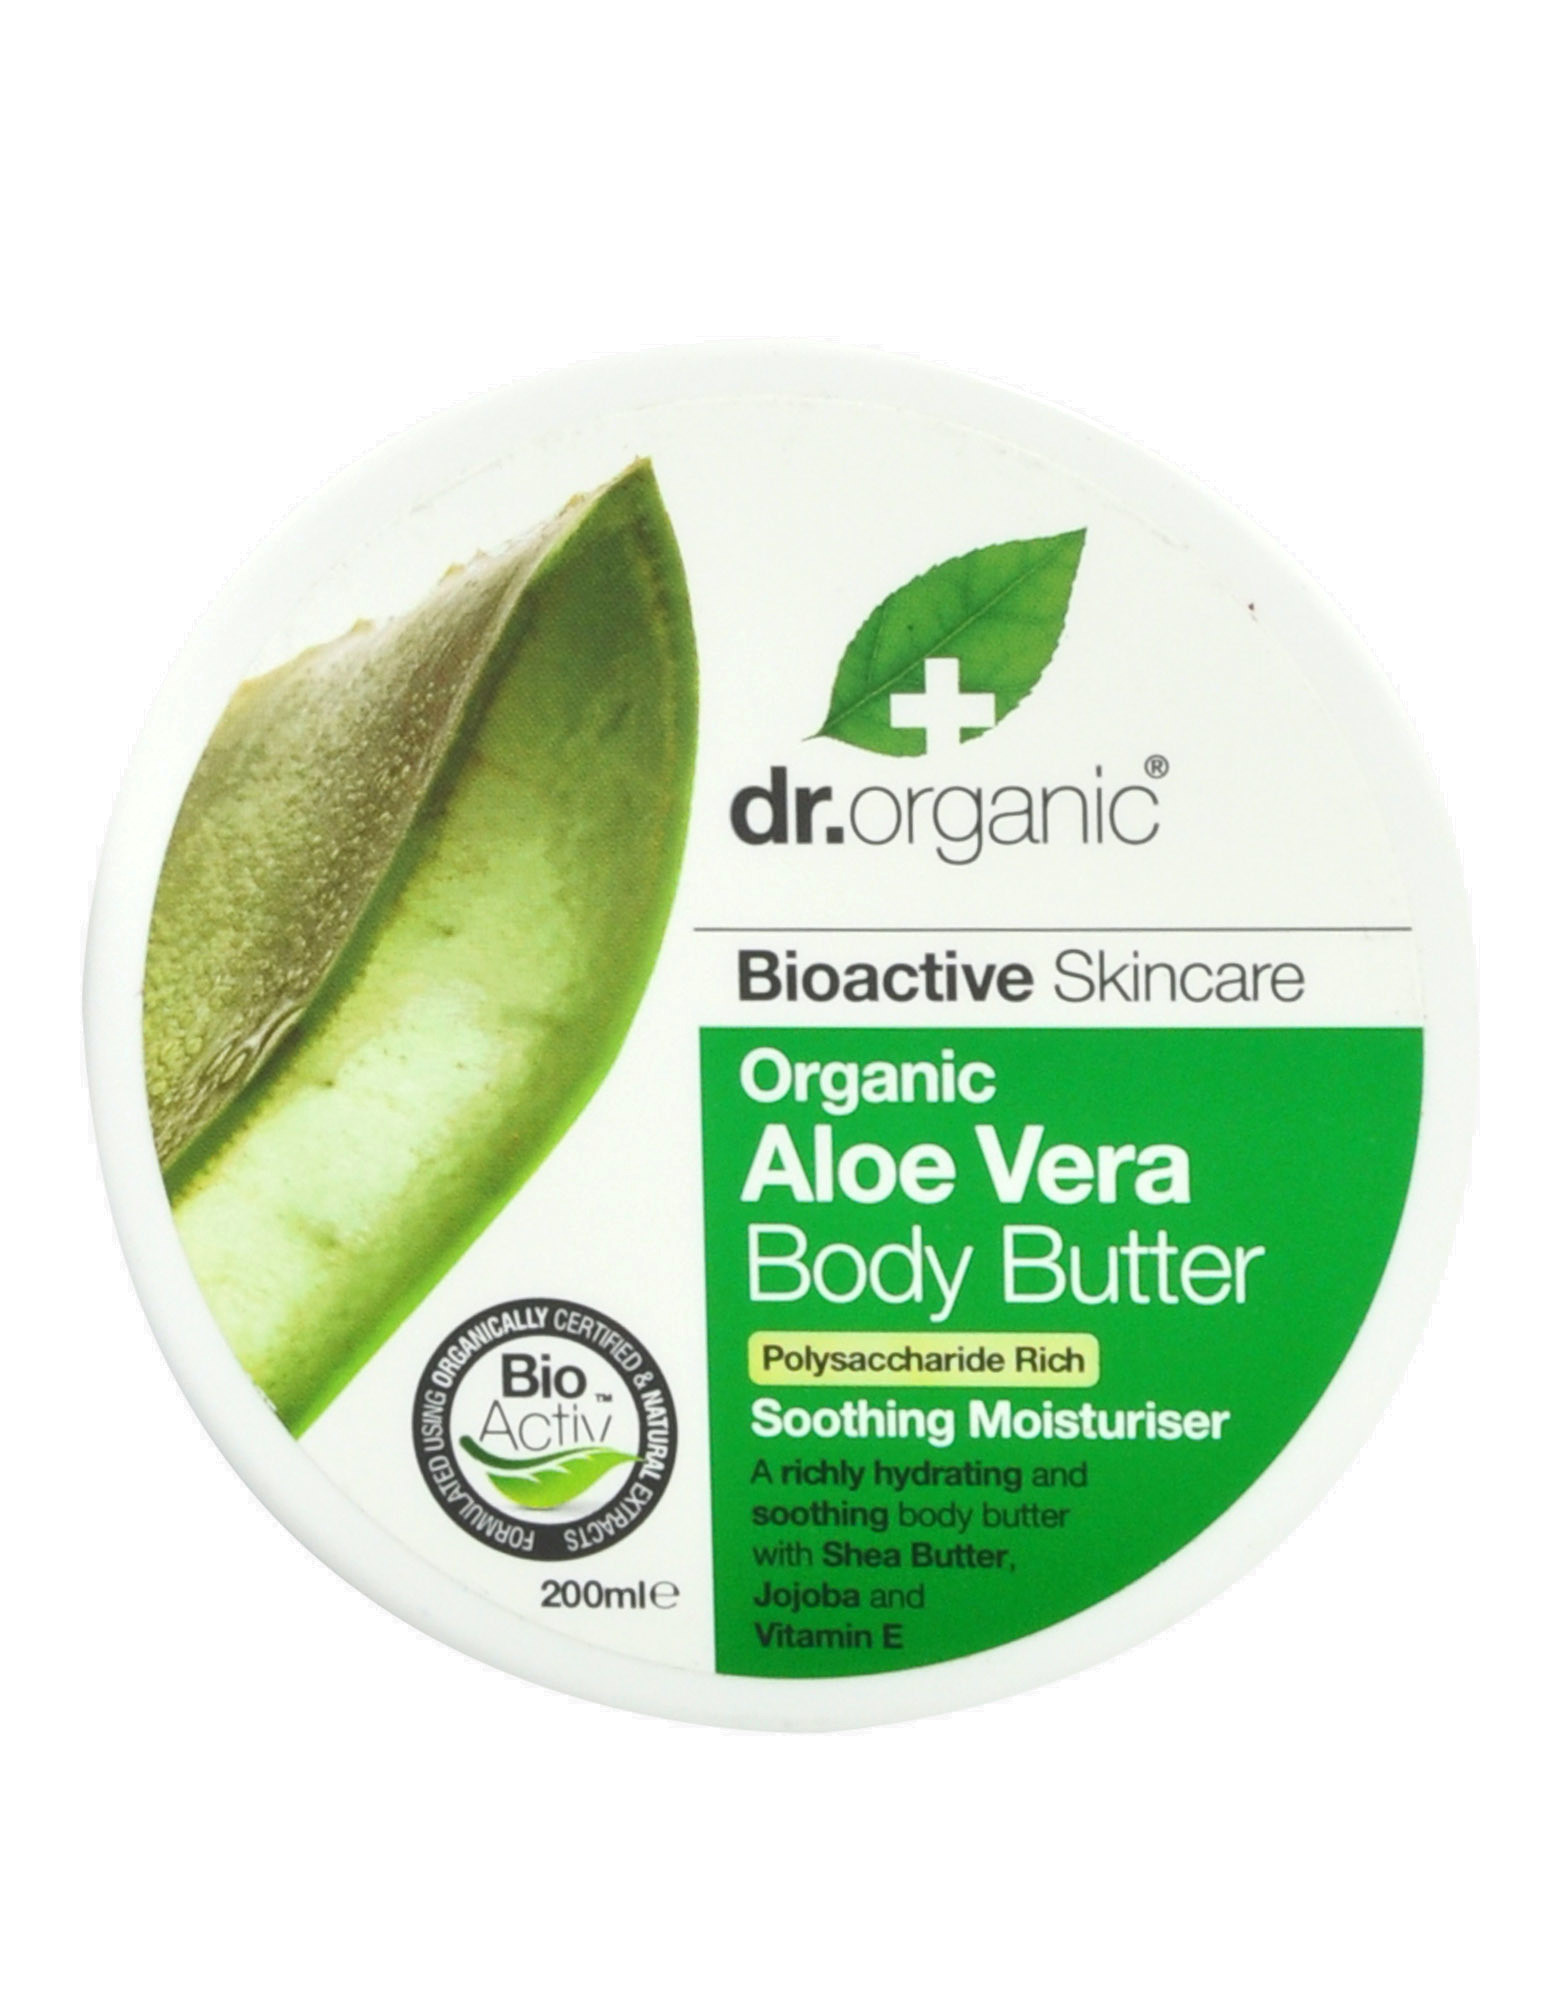 organic aloe vera body butter by dr organic 200ml 16 59. Black Bedroom Furniture Sets. Home Design Ideas